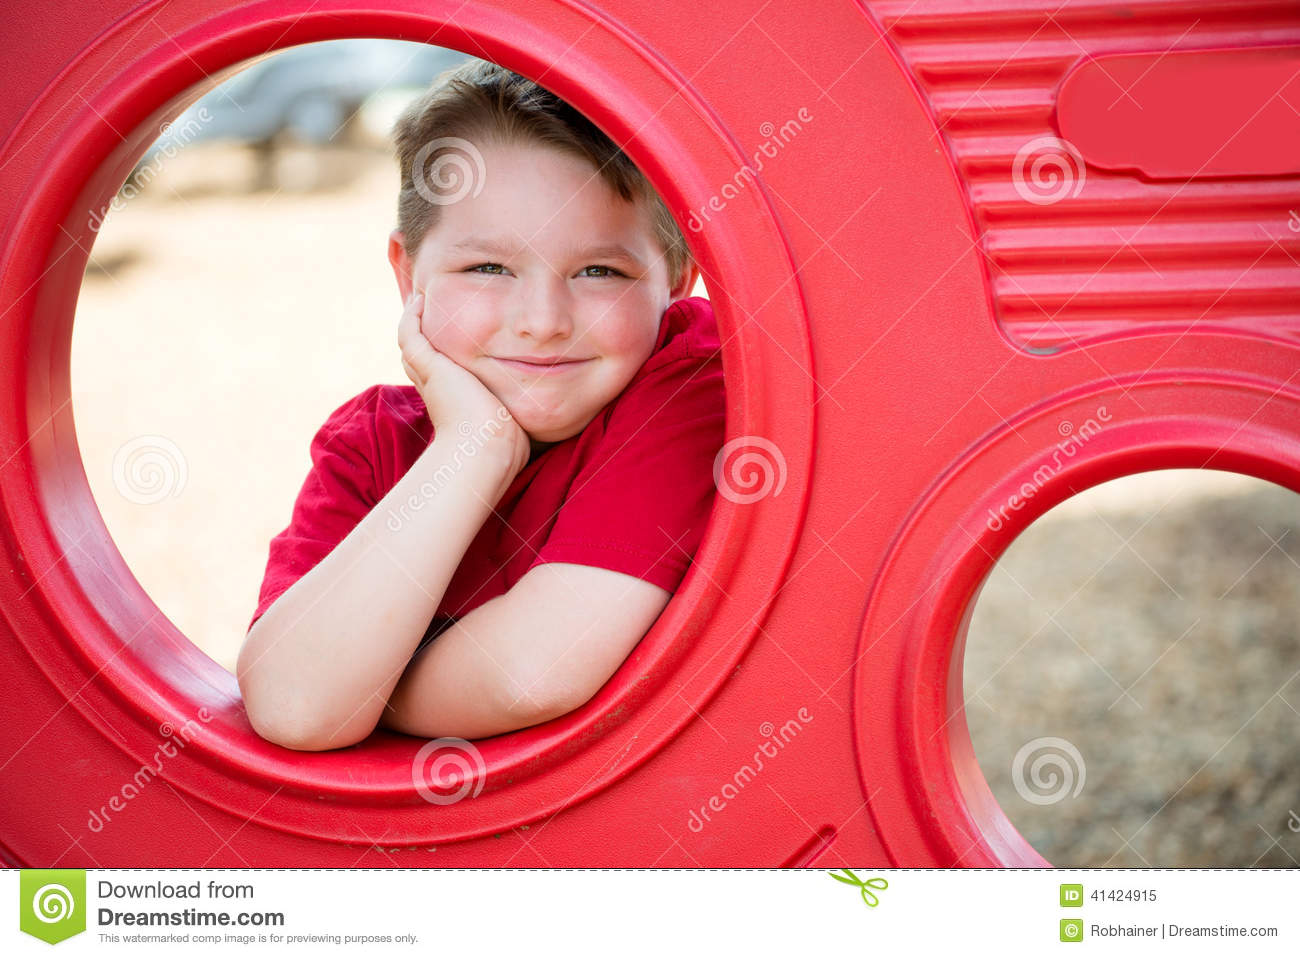 Portrait of young child on playground